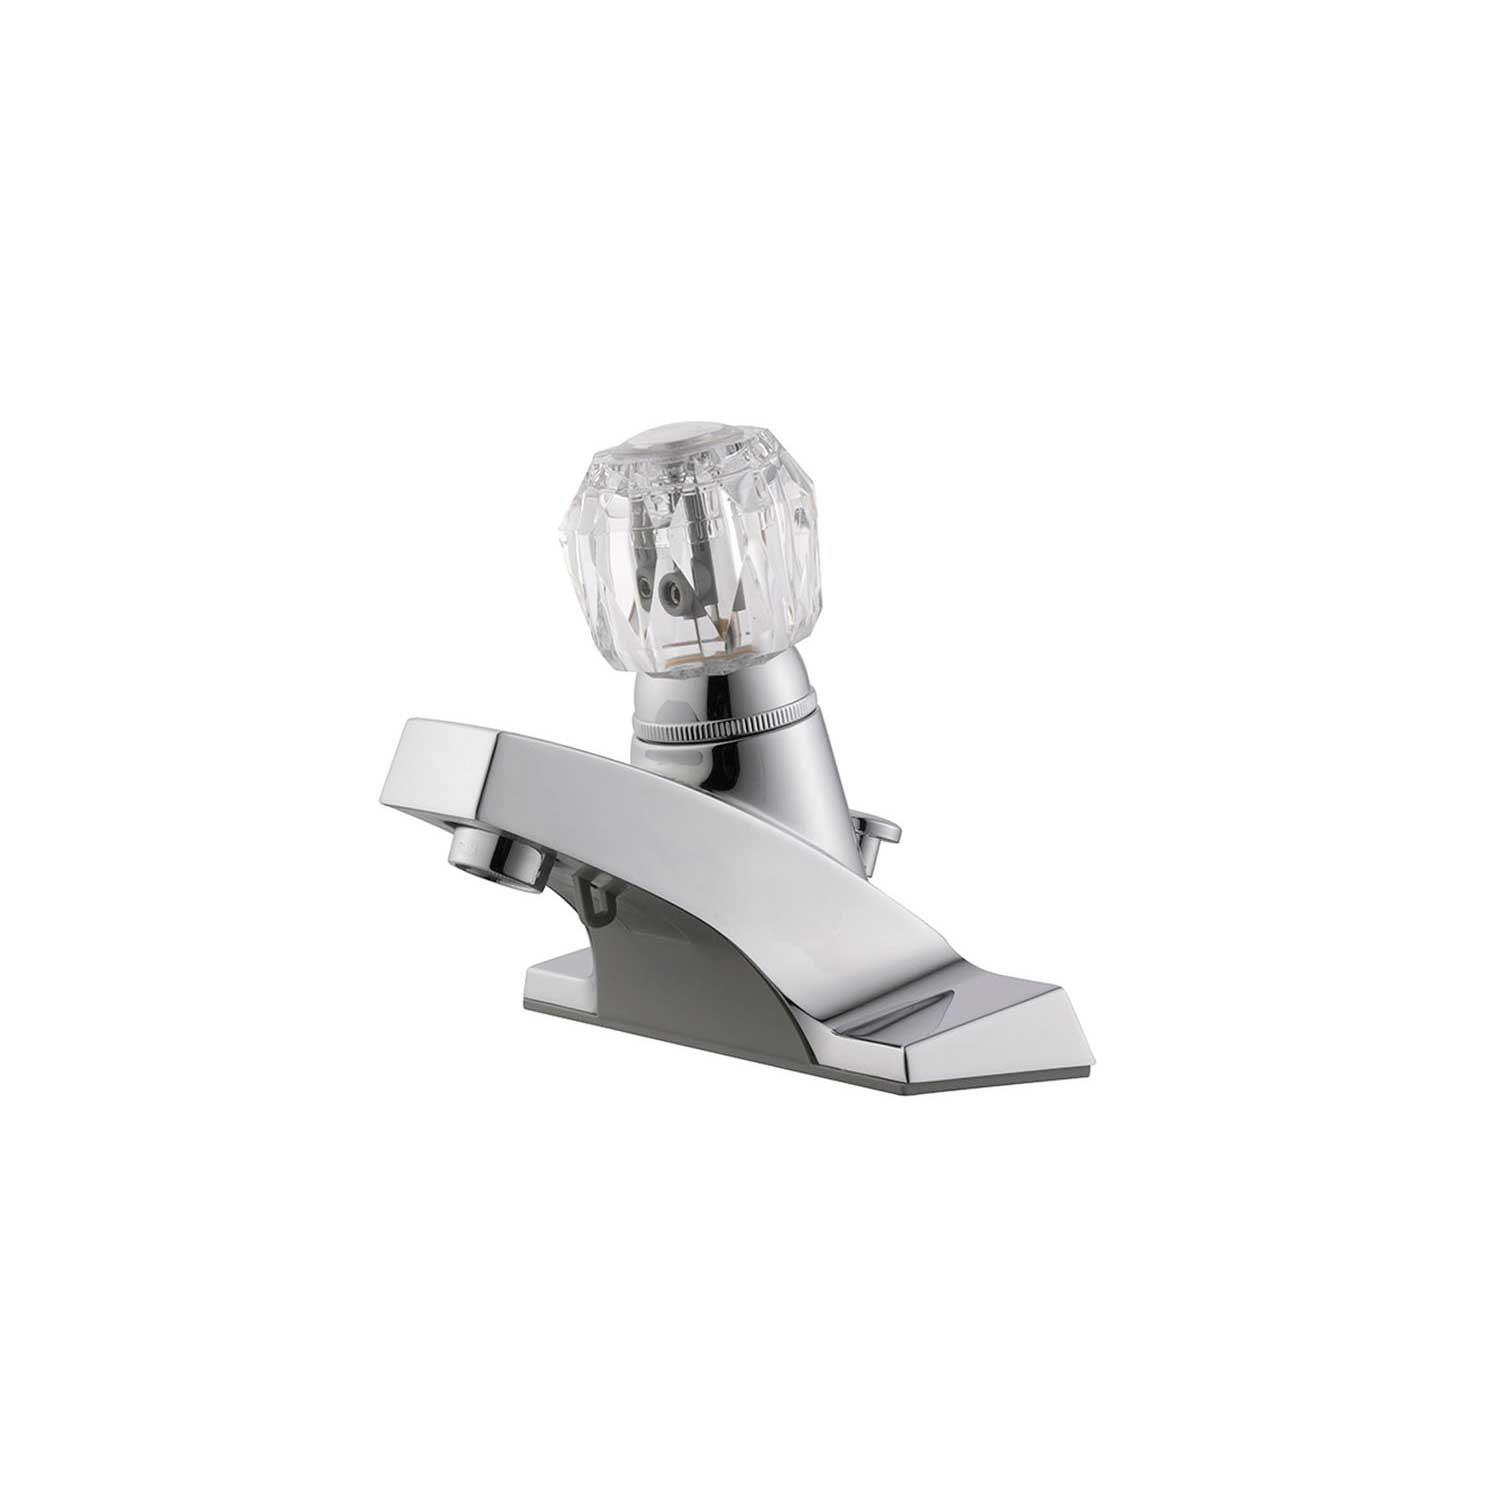 Design House Millbridge 4 in. Lavatory Faucet, Polished Chrome - 545947